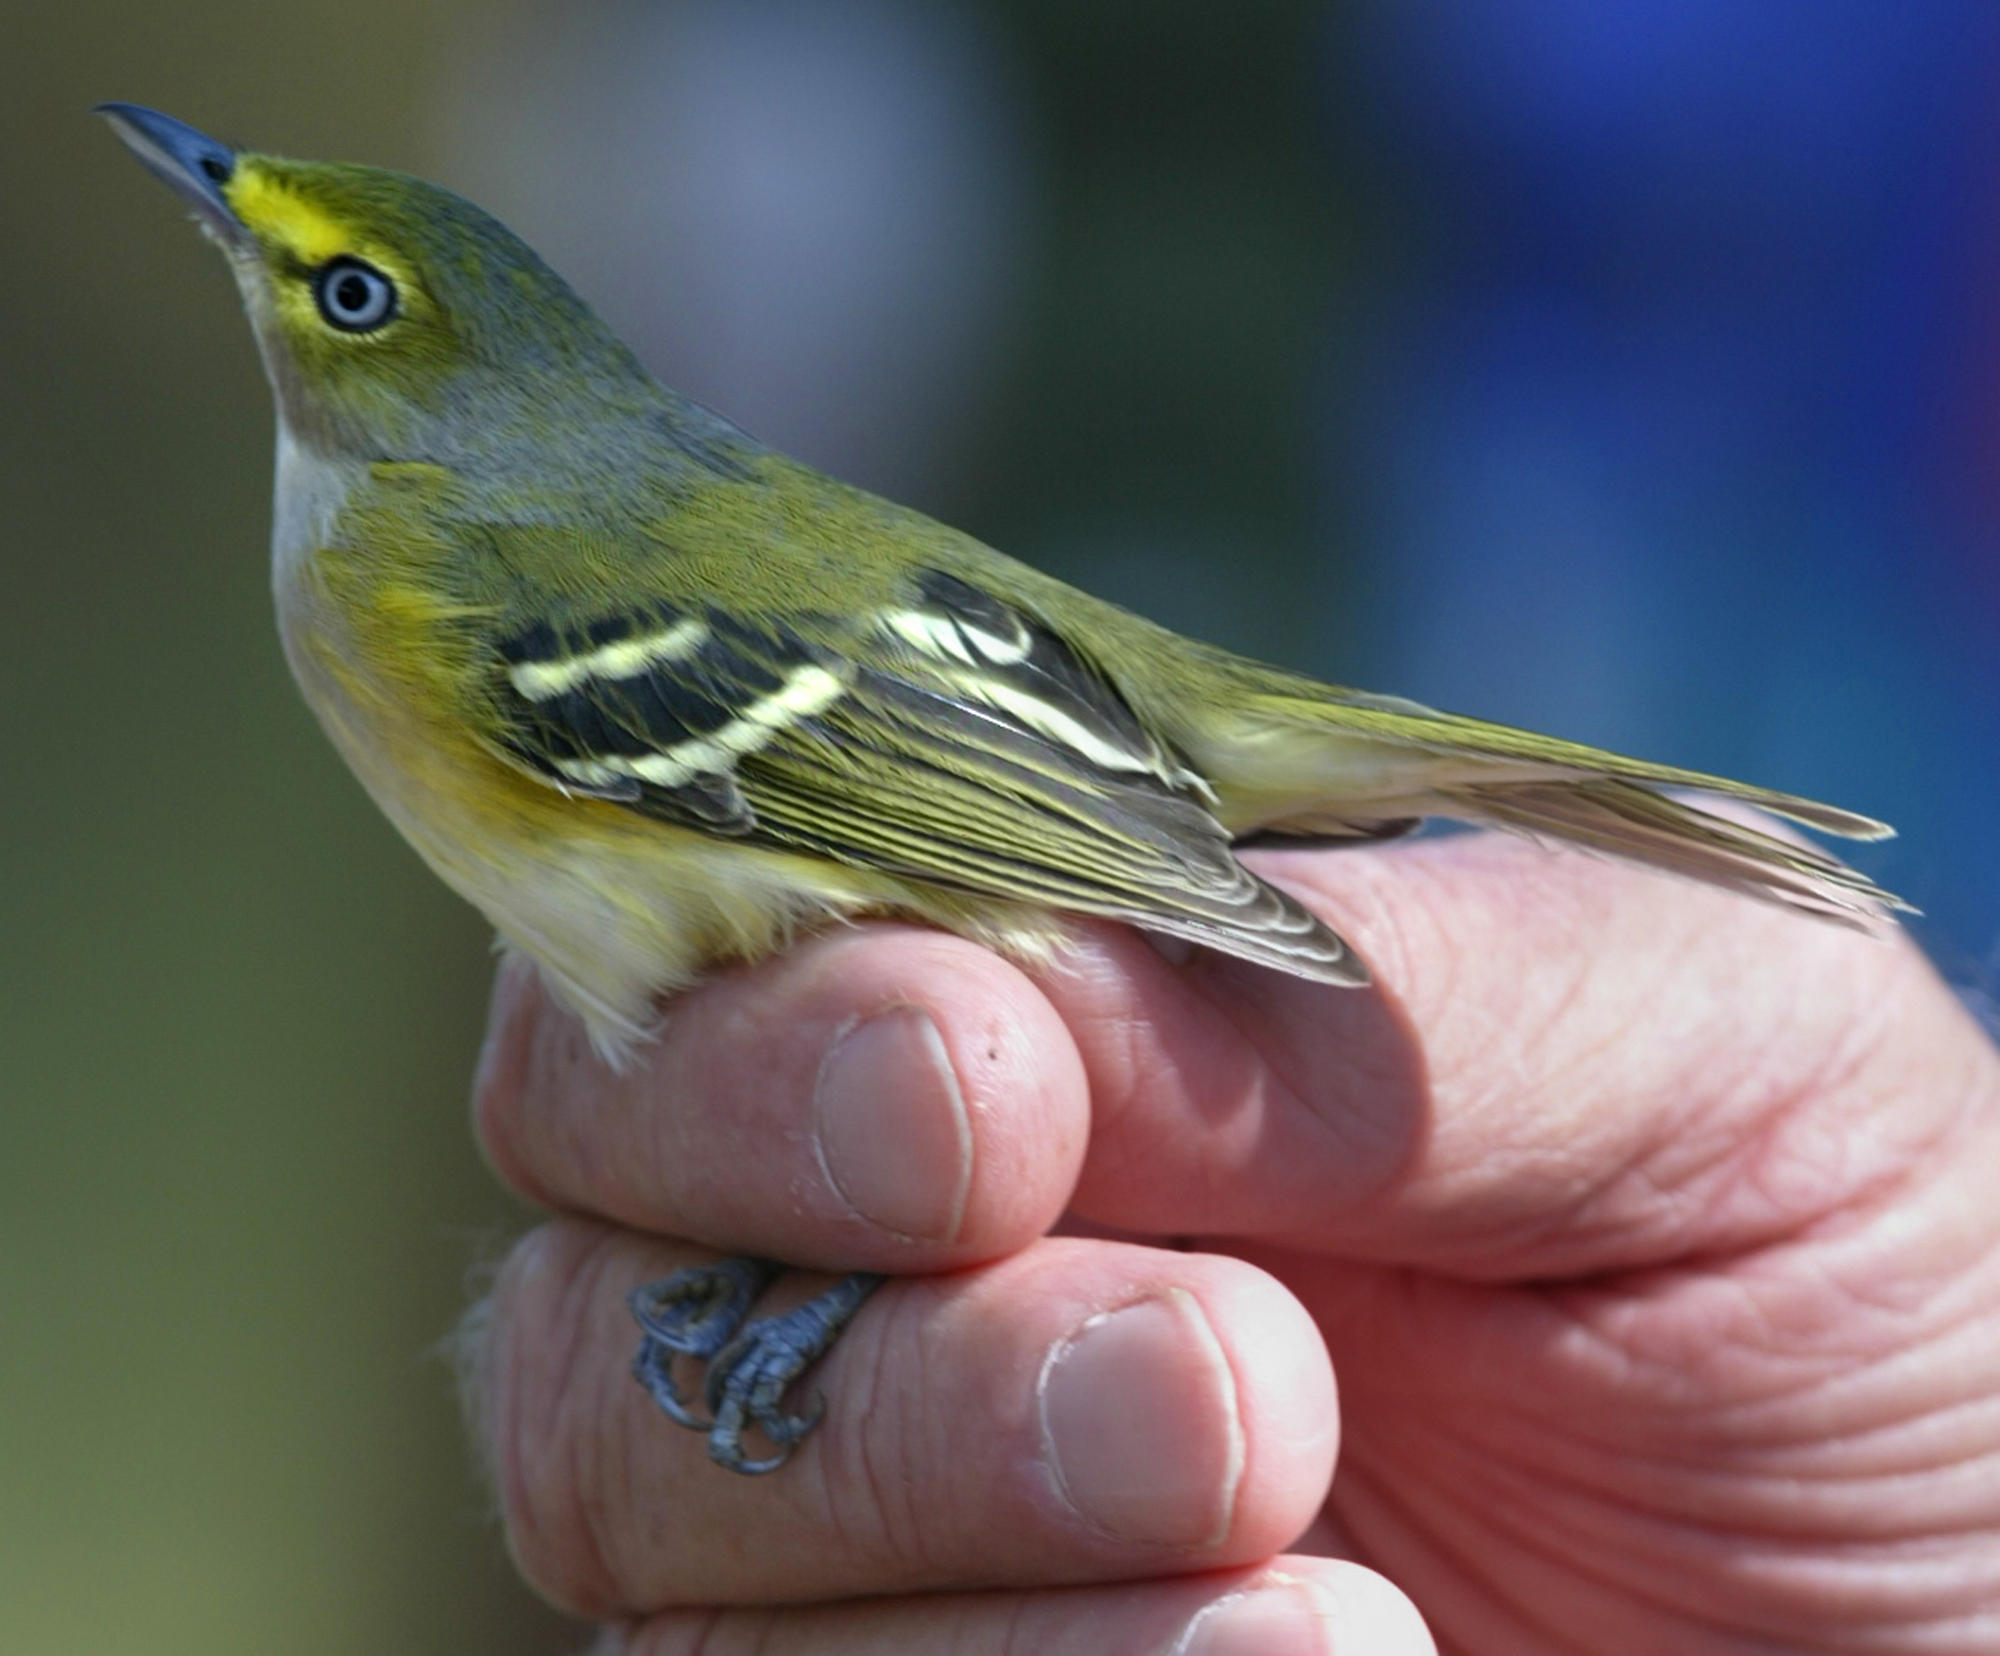 Conservationists Urge Residents To Landscape For The Birds